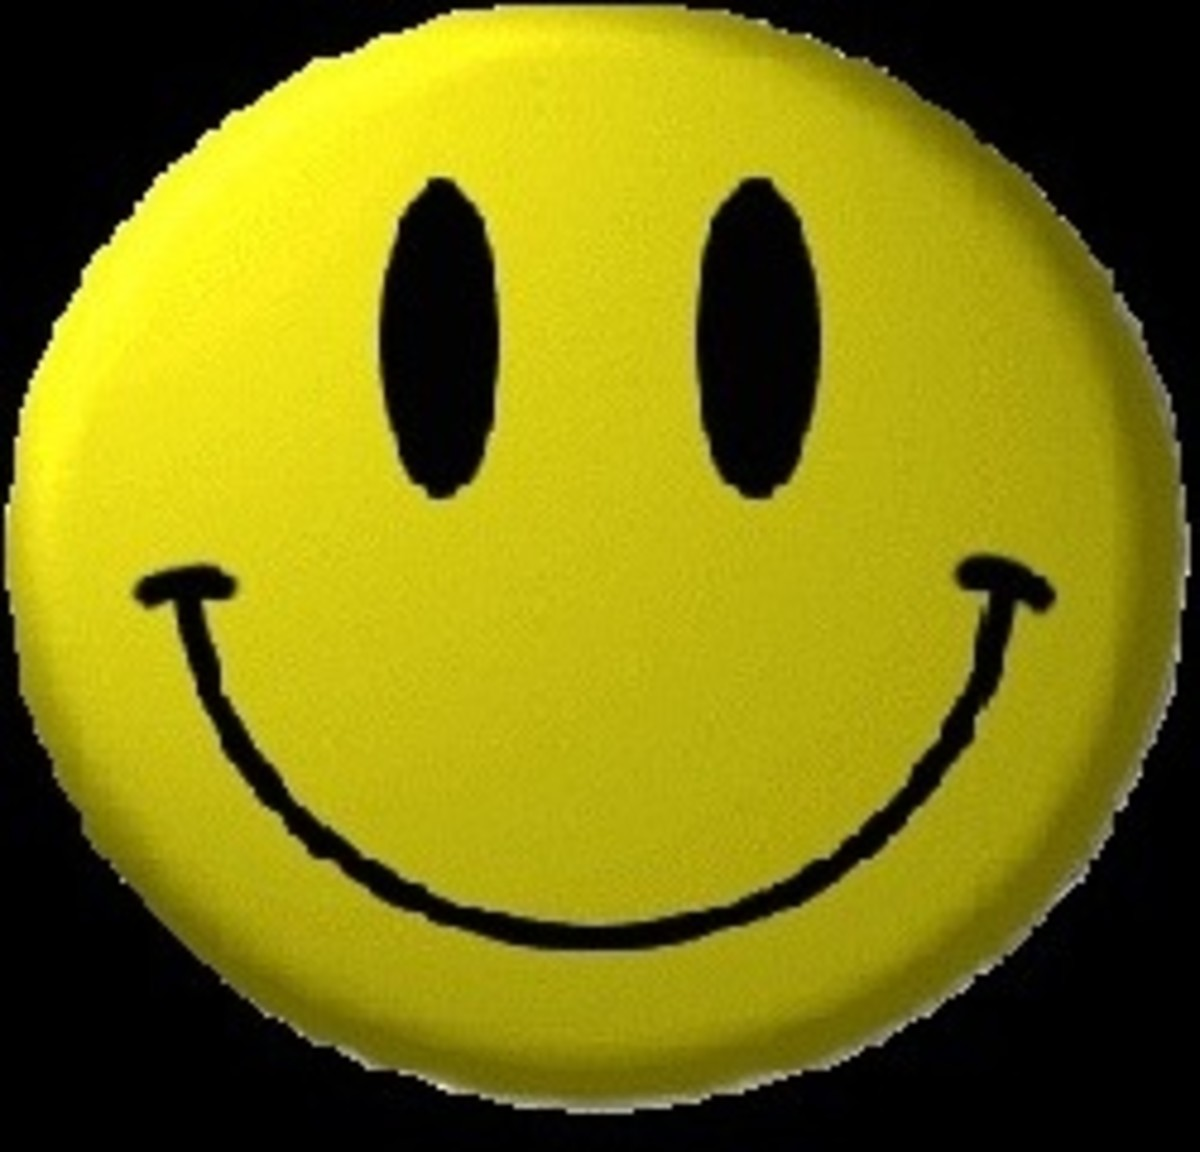 Only 1 out of 5 smileys... maybe it should be more of a frown!